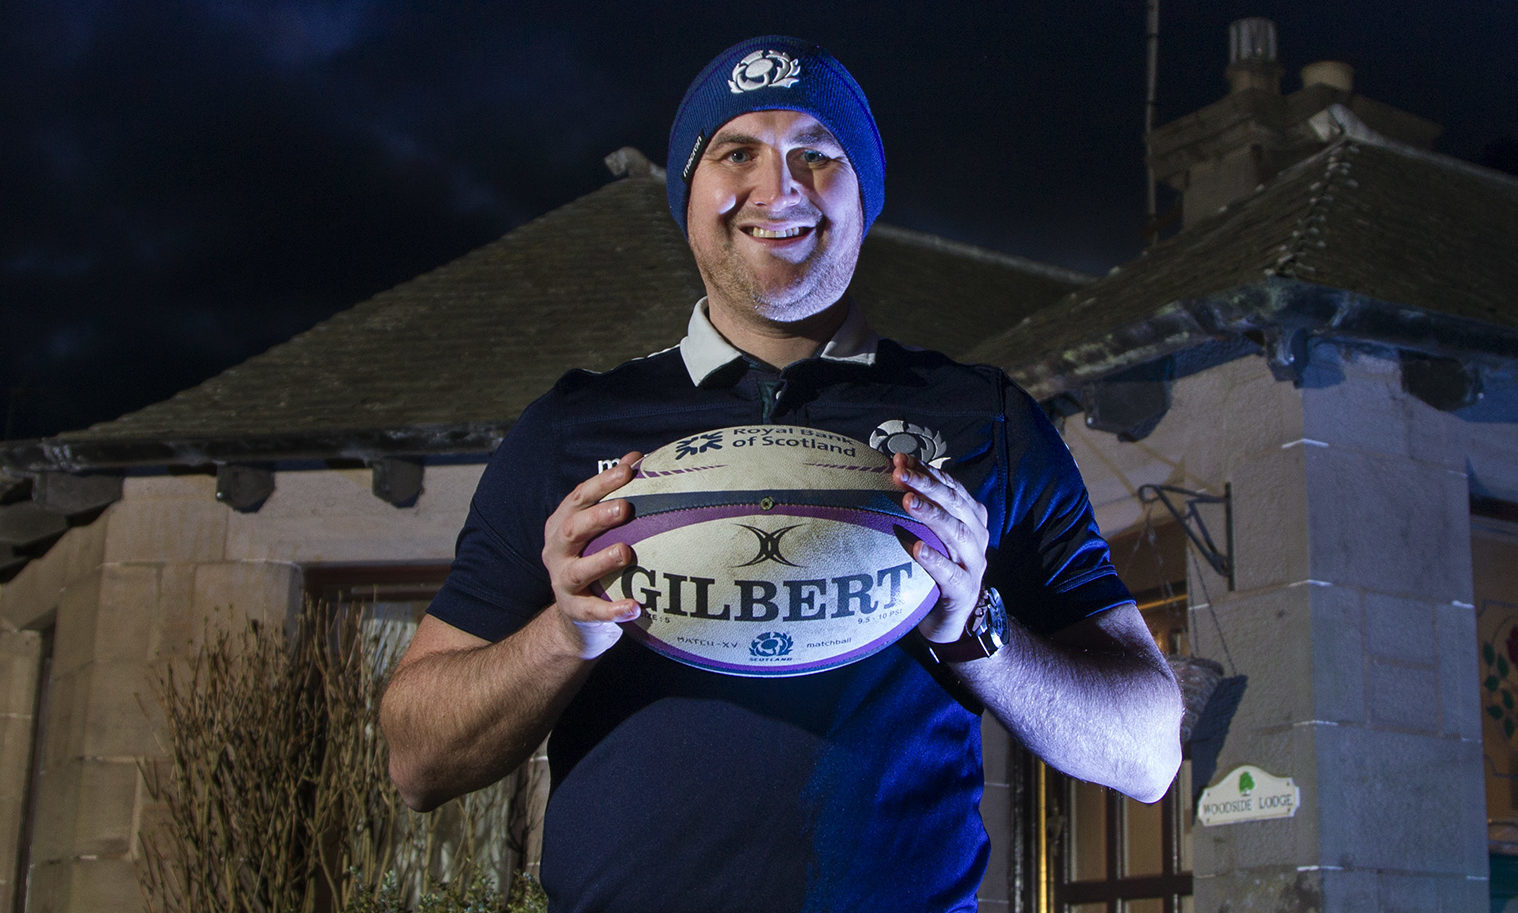 Arbroath man Iain Cooper caught the match-winning rugby ball at the end of Saturday's Calcutta Cup victory at Murrayfield.